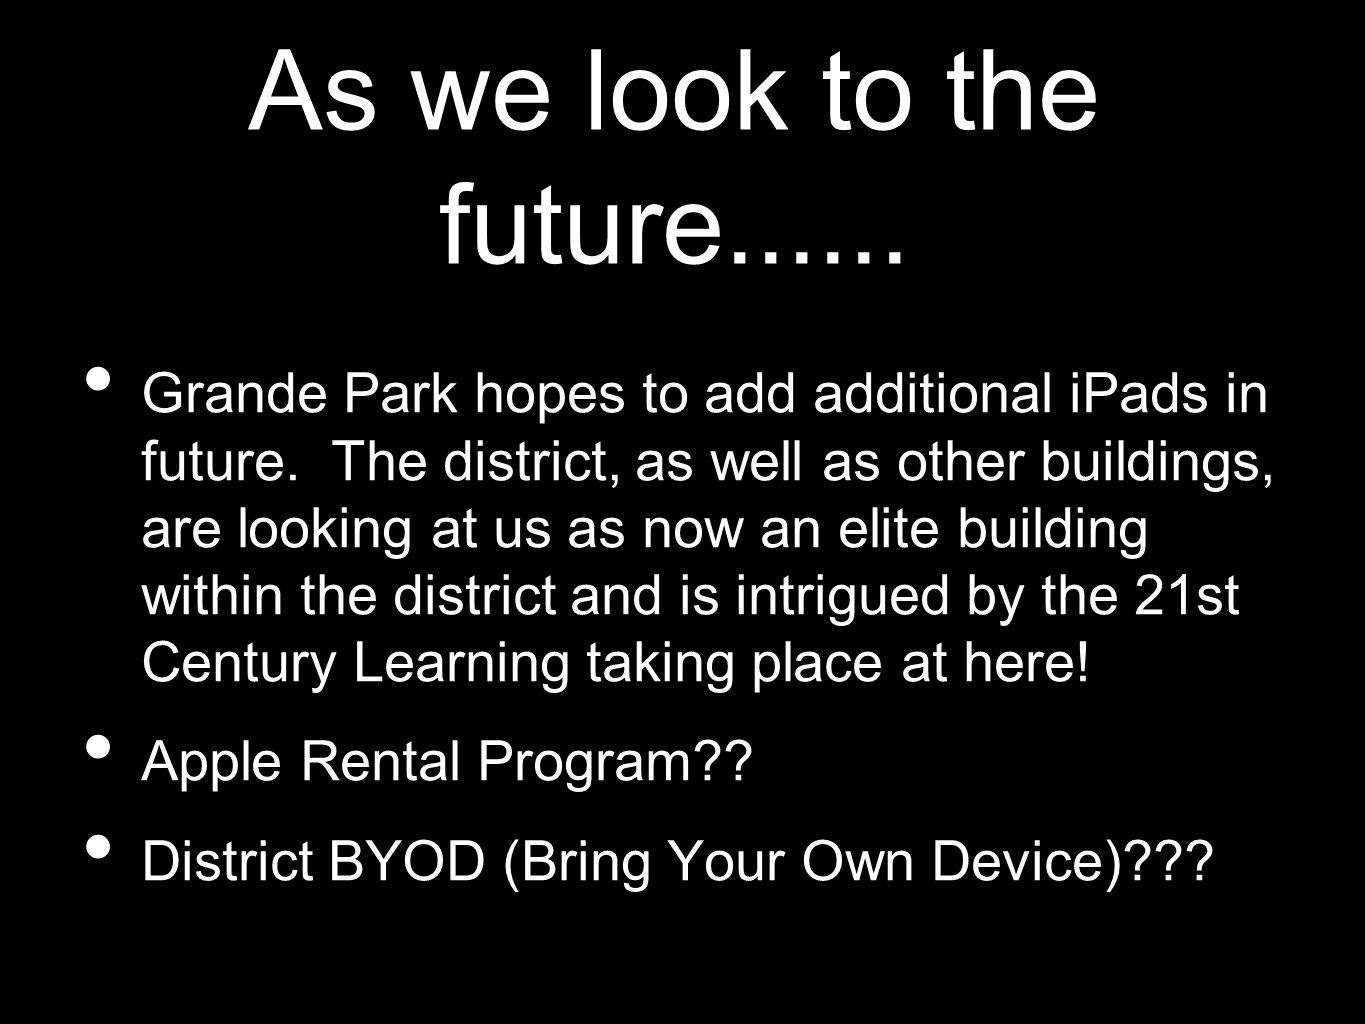 As we look to the future...... Grande Park hopes to add additional iPads in future.